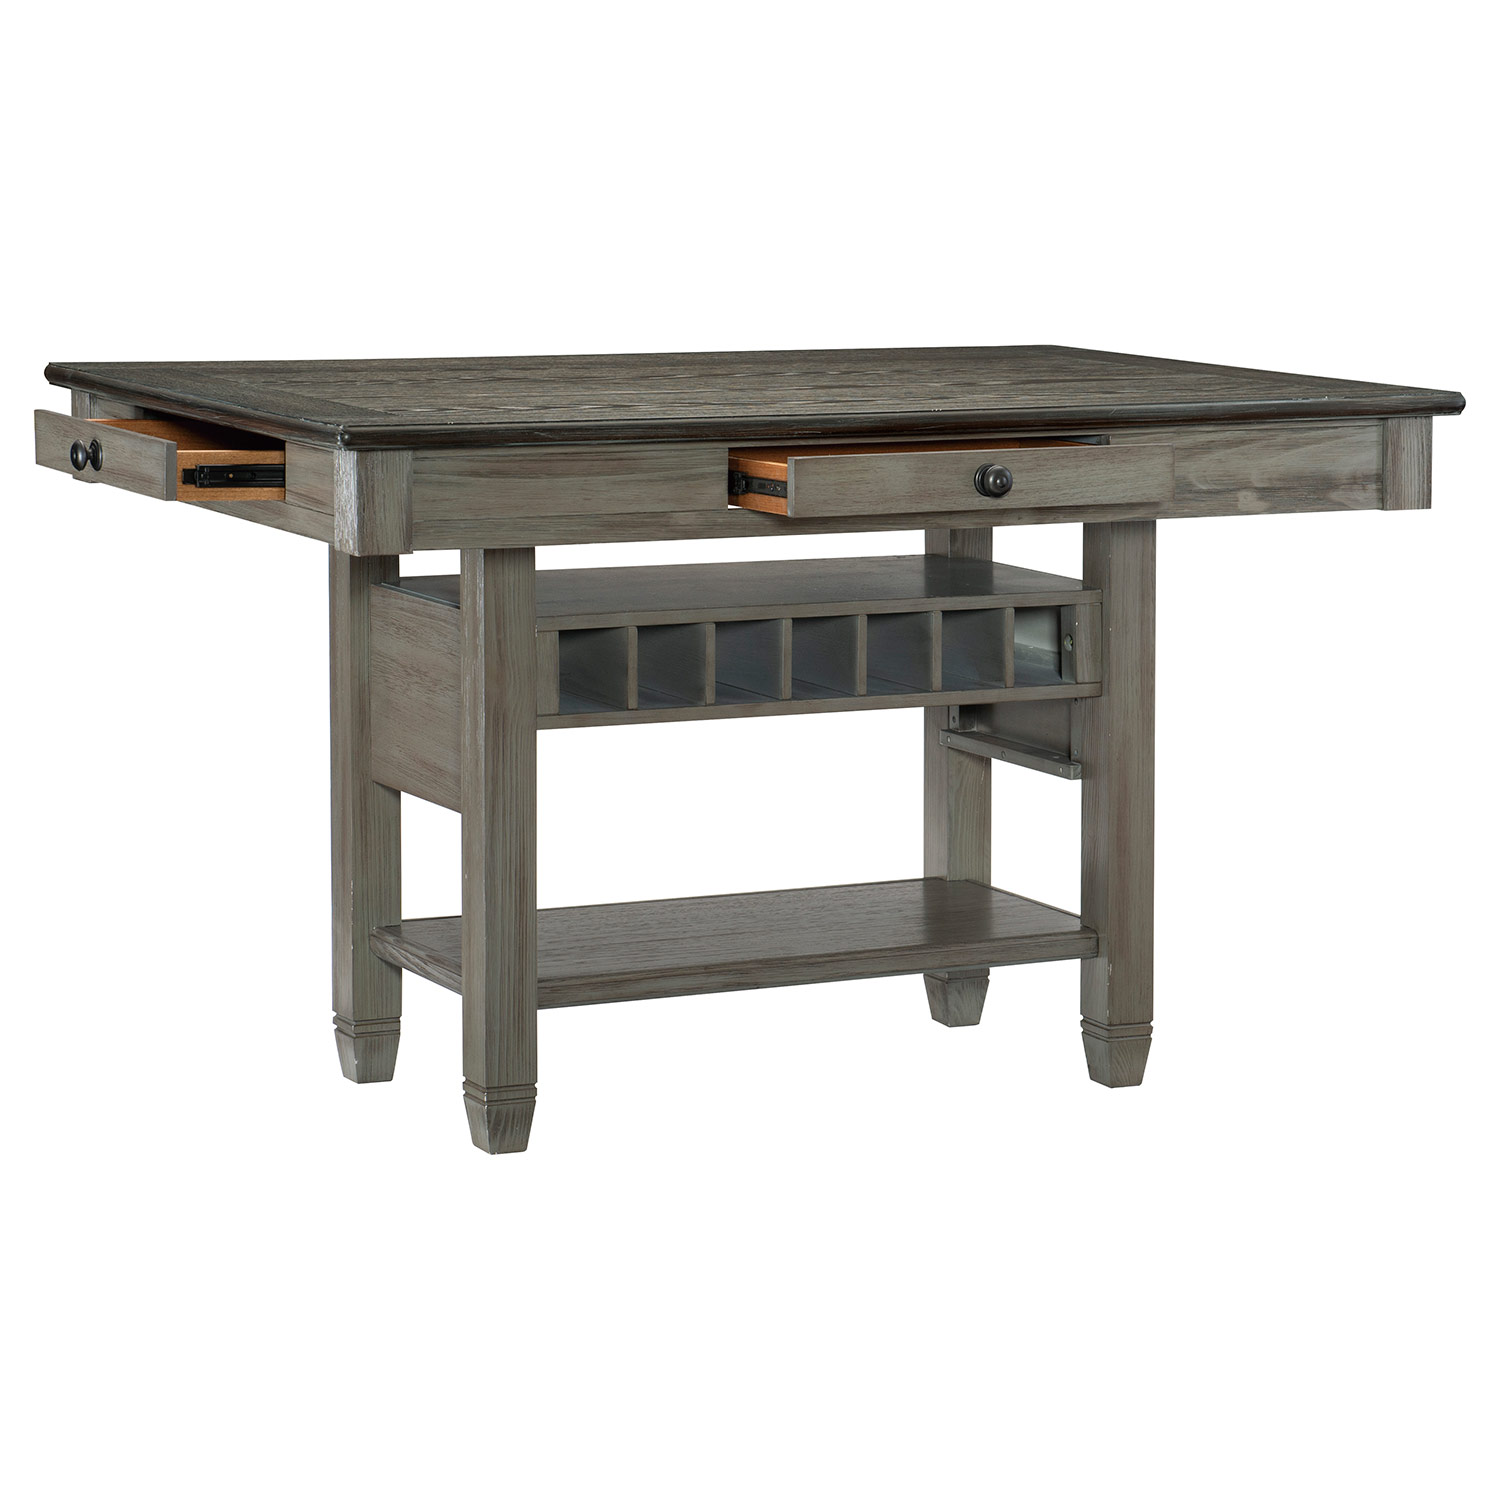 Homelegance Granby Counter Height DiningTable - Antique Gray and Coffee